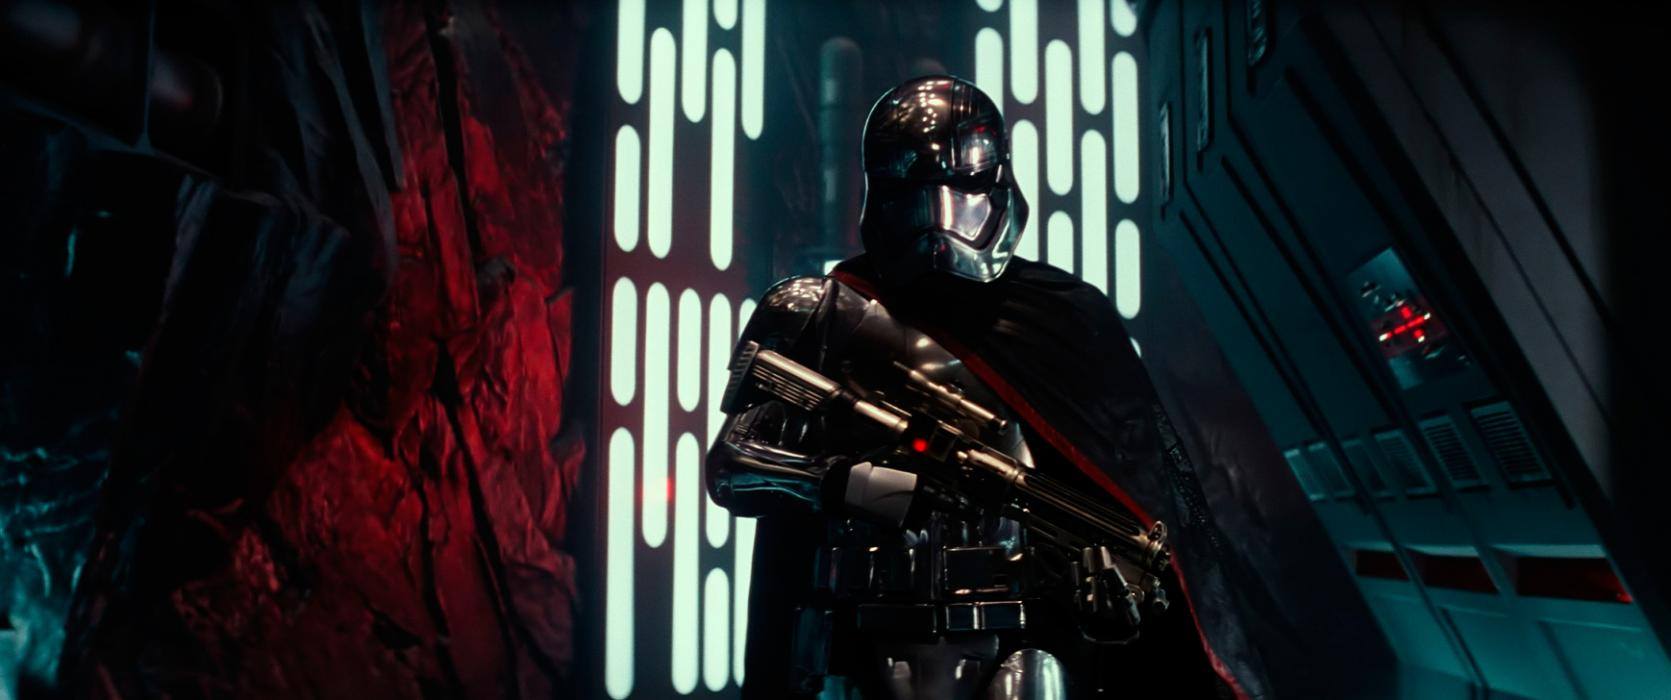 Capitana Phasma Star Wars: Episodio VIII - Gwendoline Christie